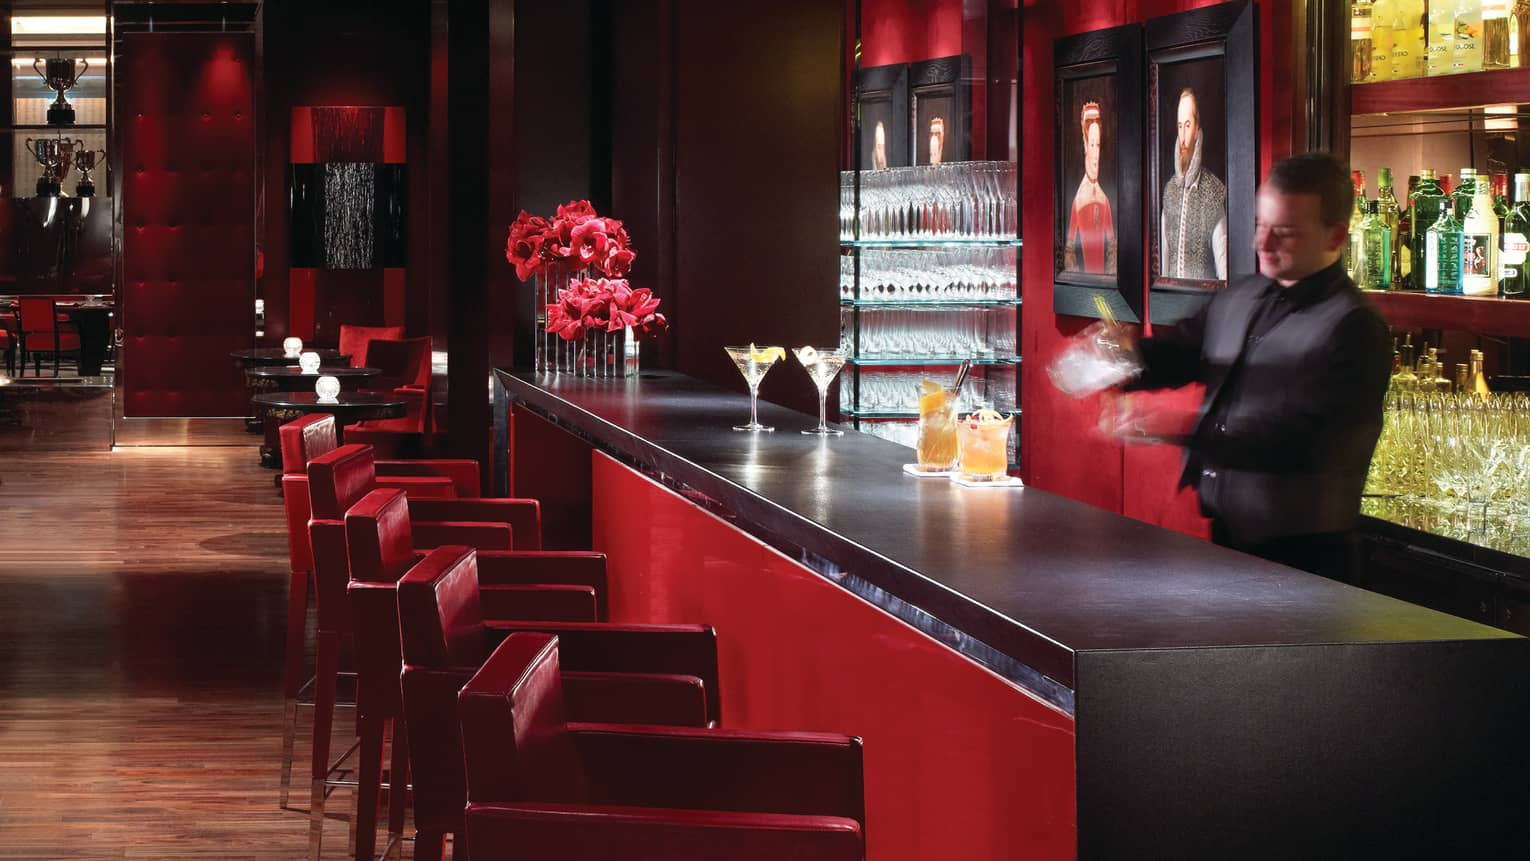 Bartender shaking cocktail behind Amaranto bar lined with red stools, martinis, flowers